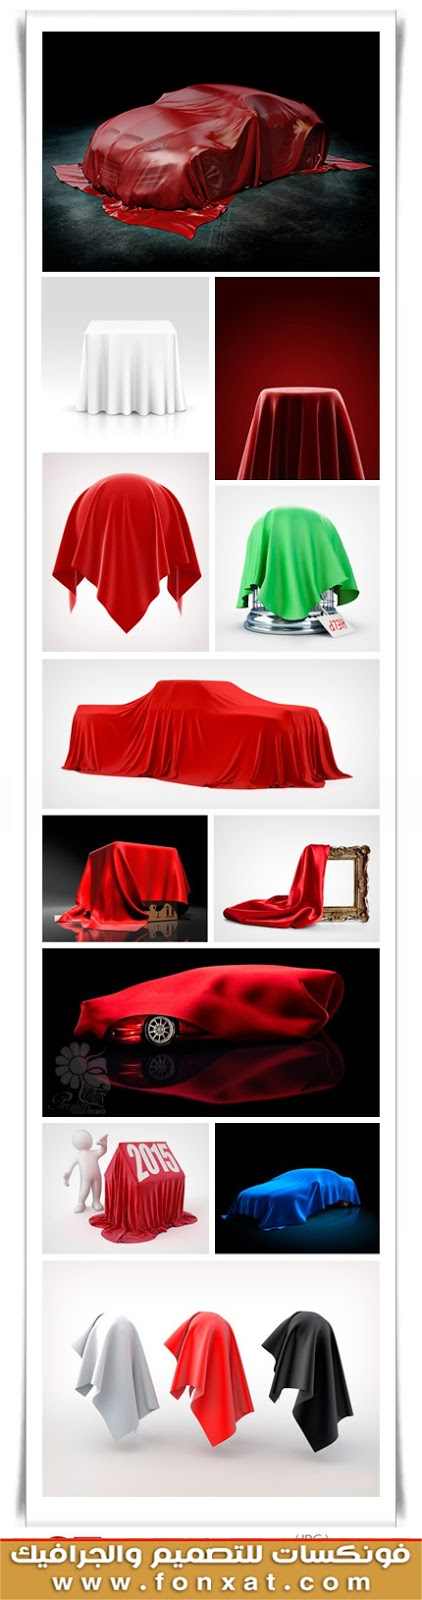 Download high-quality images of objects under silk